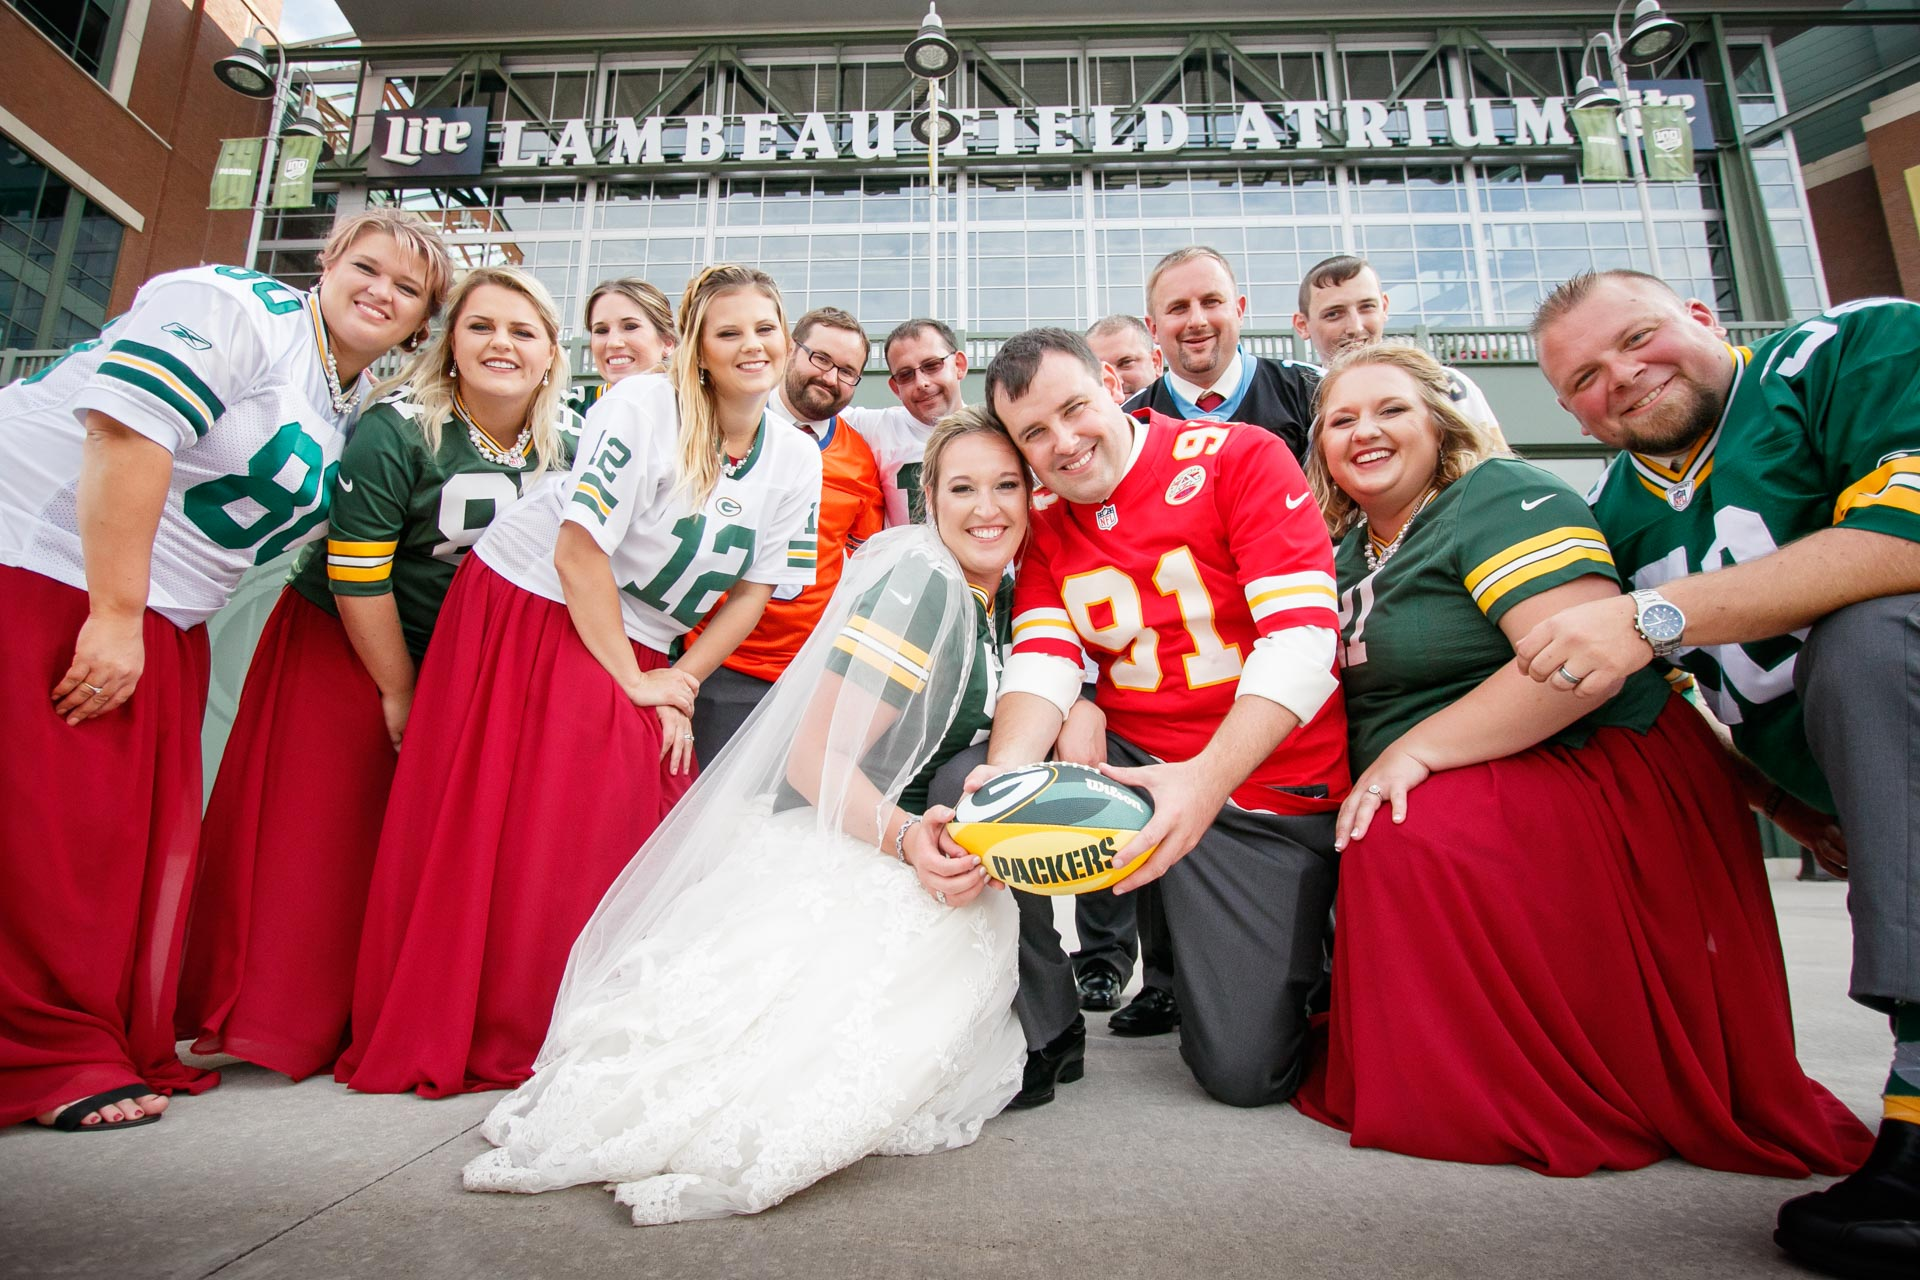 lambeau-field-wedding-bride-groom-adam-shea-photography-green-bay-appleton-neenah-photographer-7.jpg